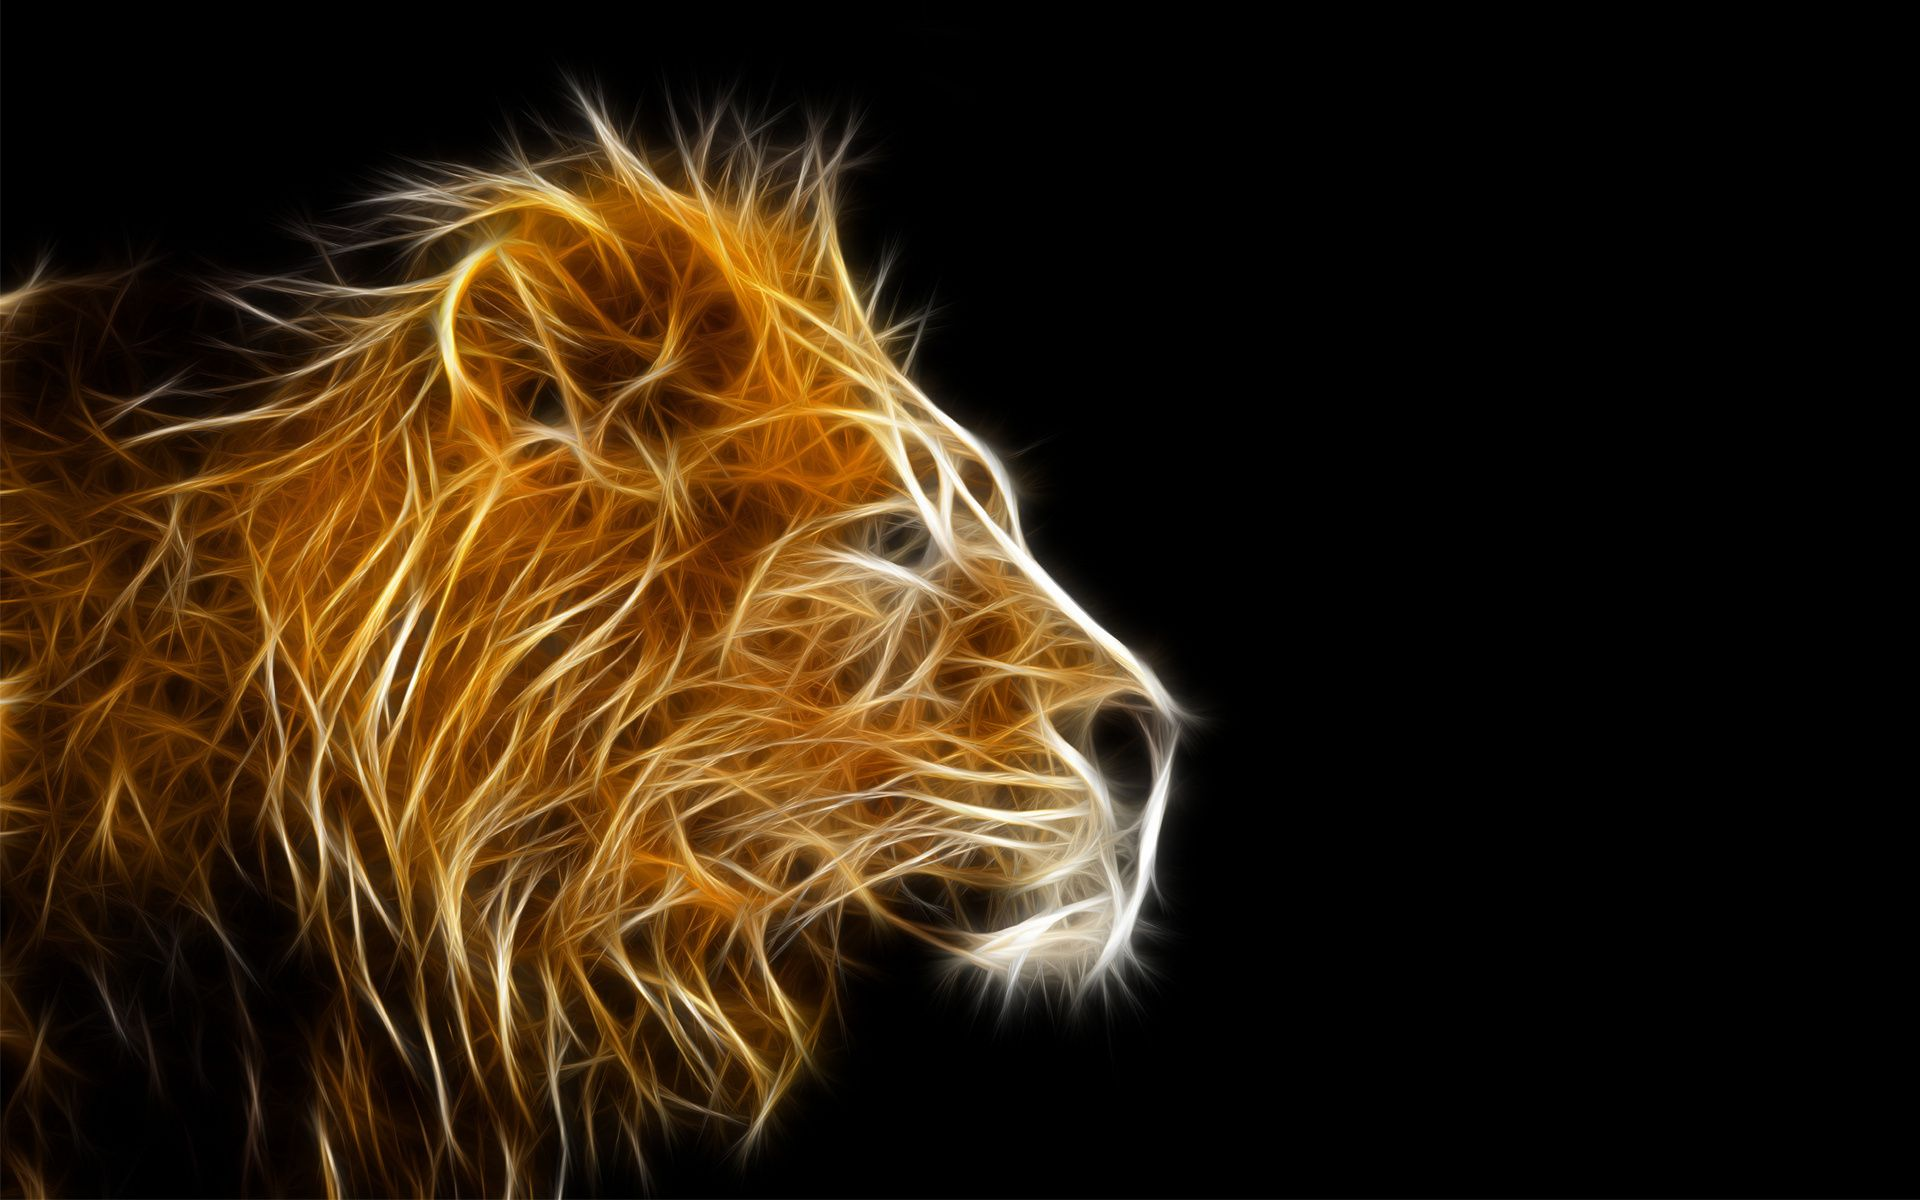 3d Lion Wallpapers Posted By Samantha Thompson Images, Photos, Reviews